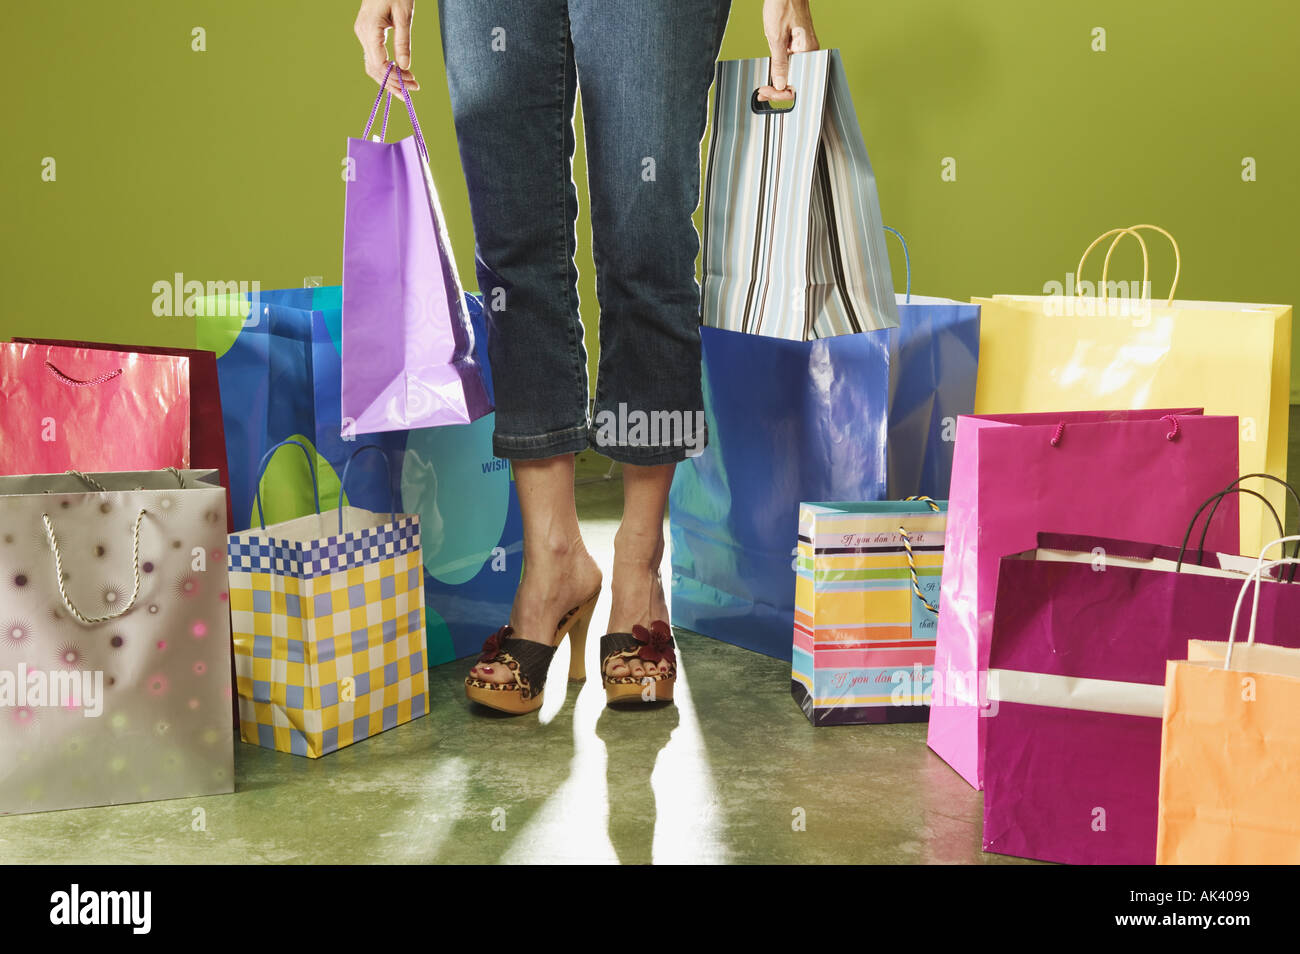 Cropped image of a woman standing among shopping bags - Stock Image